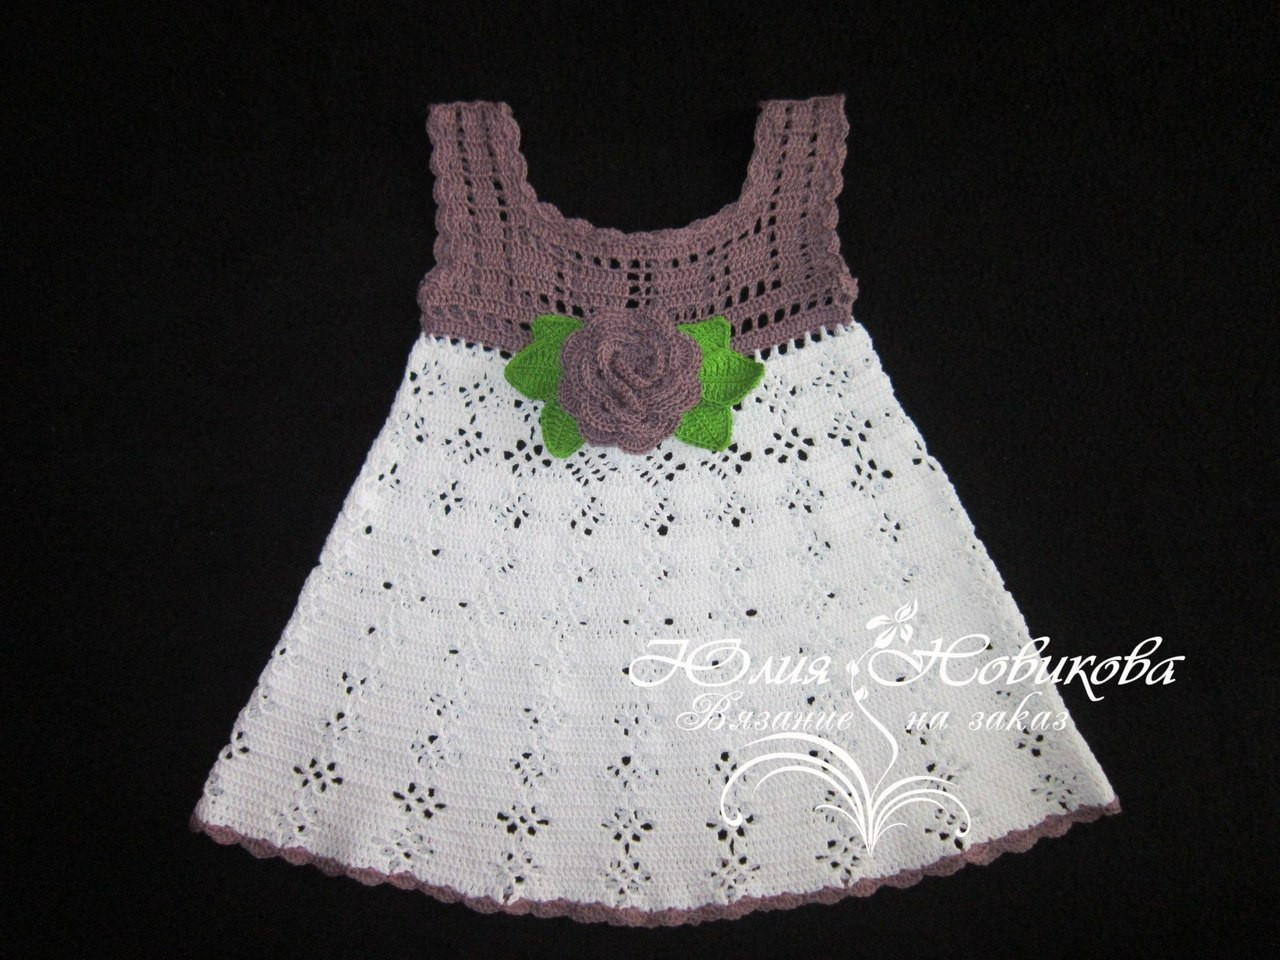 Free Crochet Baby Dress Patterns Elegant Free Crochet Baby Dress Patterns Of Fresh 40 Pictures Free Crochet Baby Dress Patterns